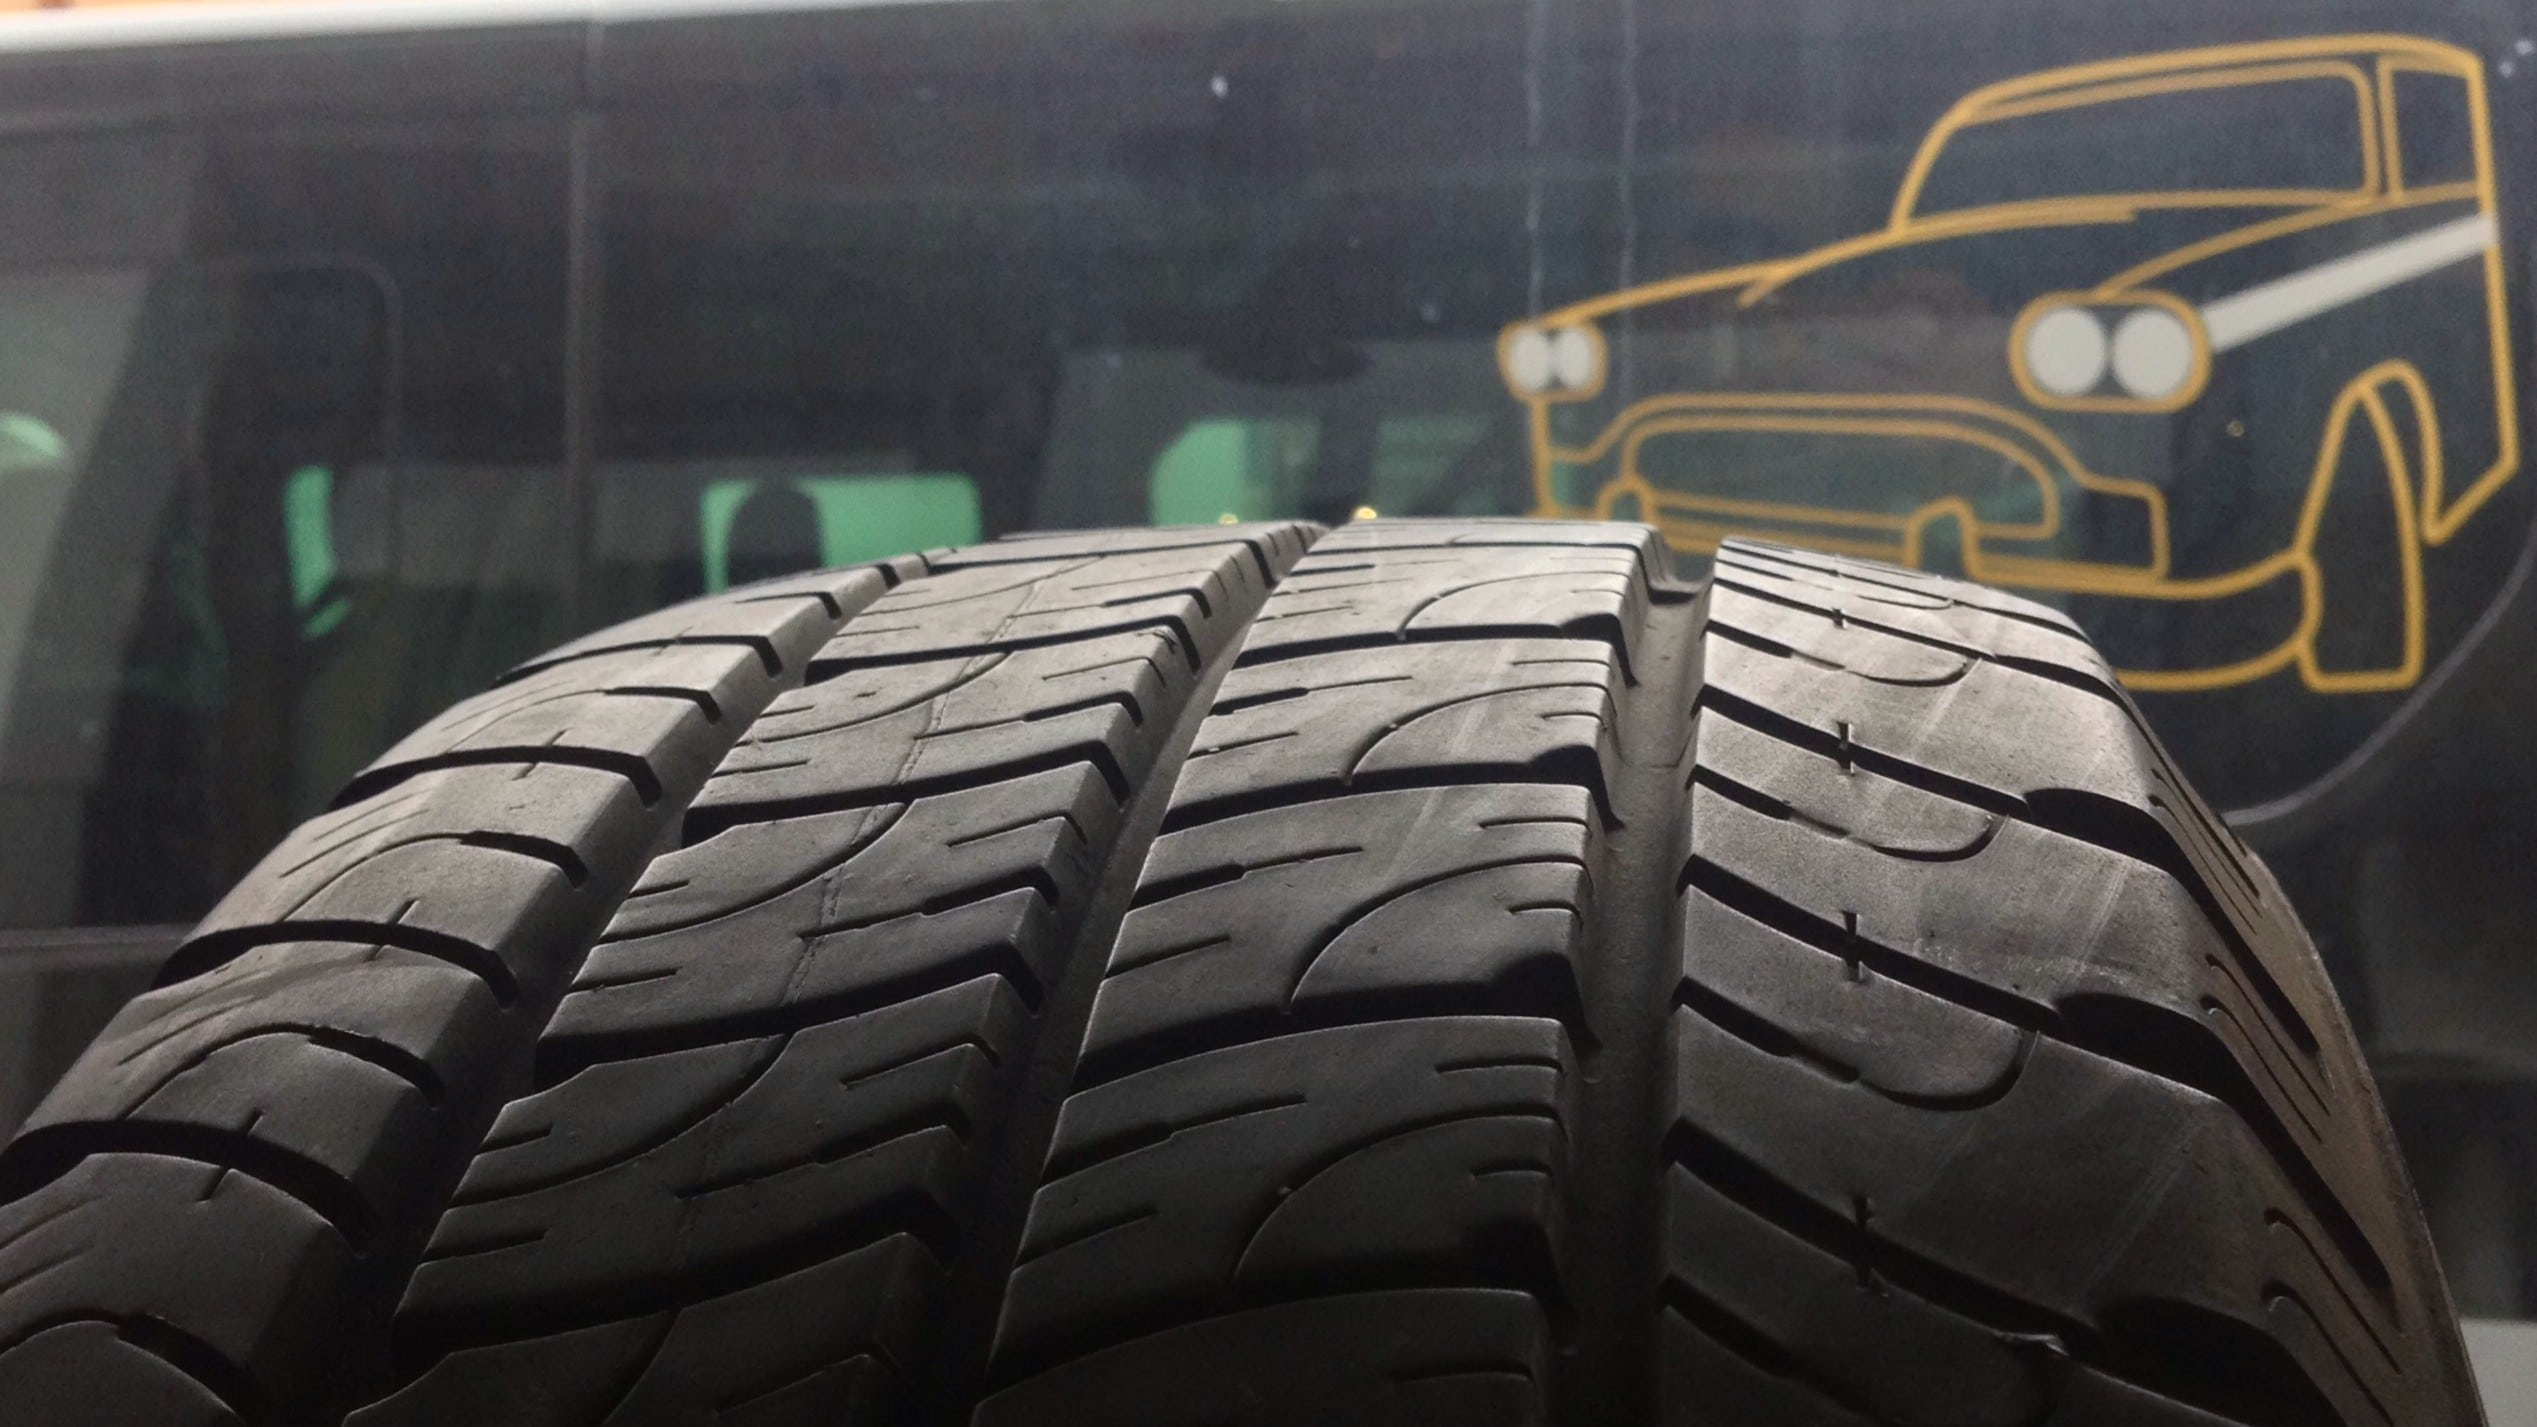 We fit summer tyres to all 4 wheels of our PowderCab minibuses for the warmer and dryer summer months of our transfer services from Geneva to Morzine